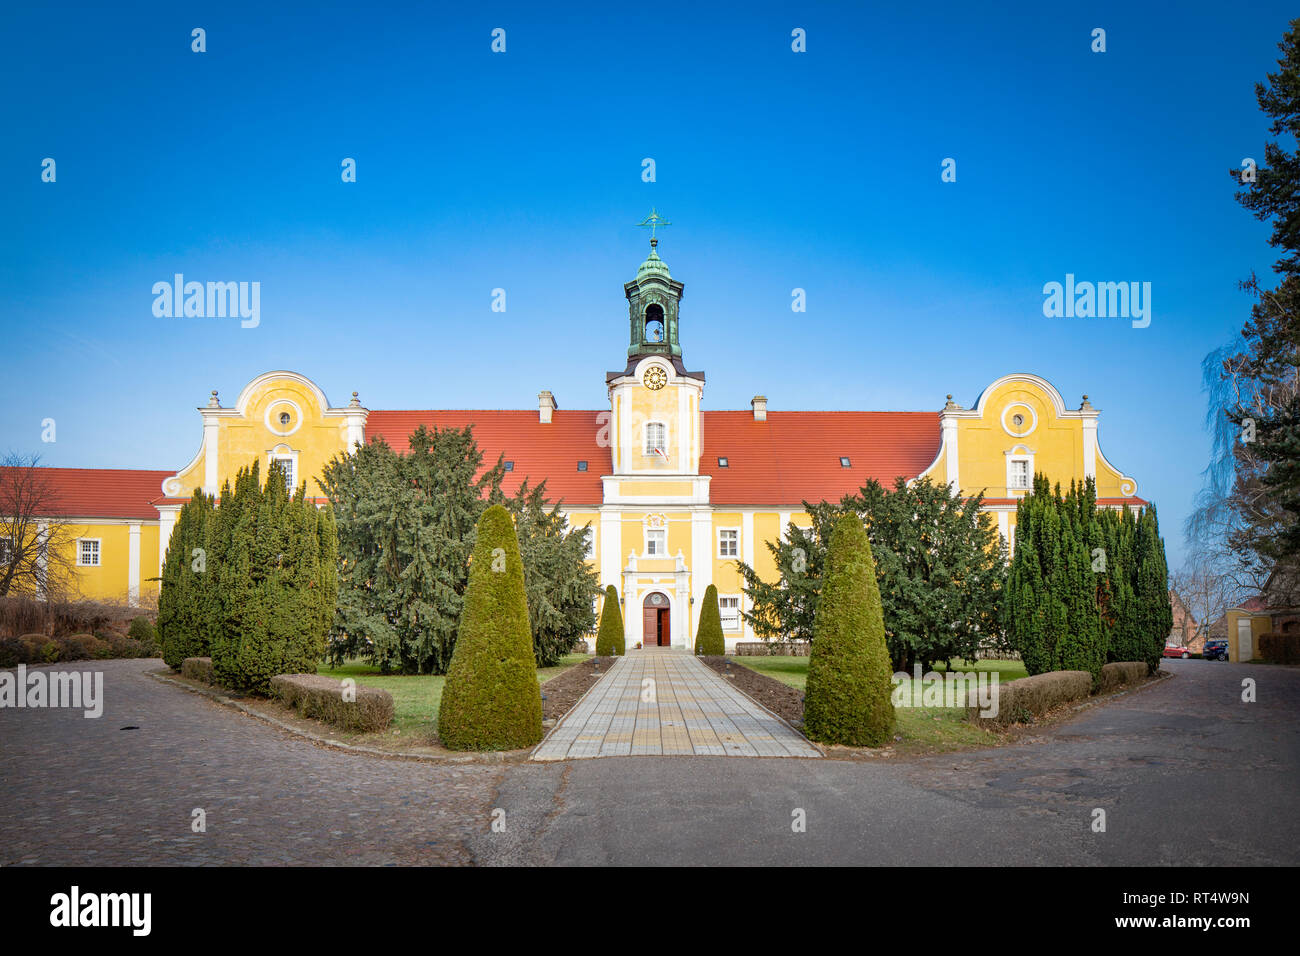 Basilica minor on the Holy Mountain in the village Glogowko /  Gostyn, Poland. Historic renaissance architecture. - Stock Image